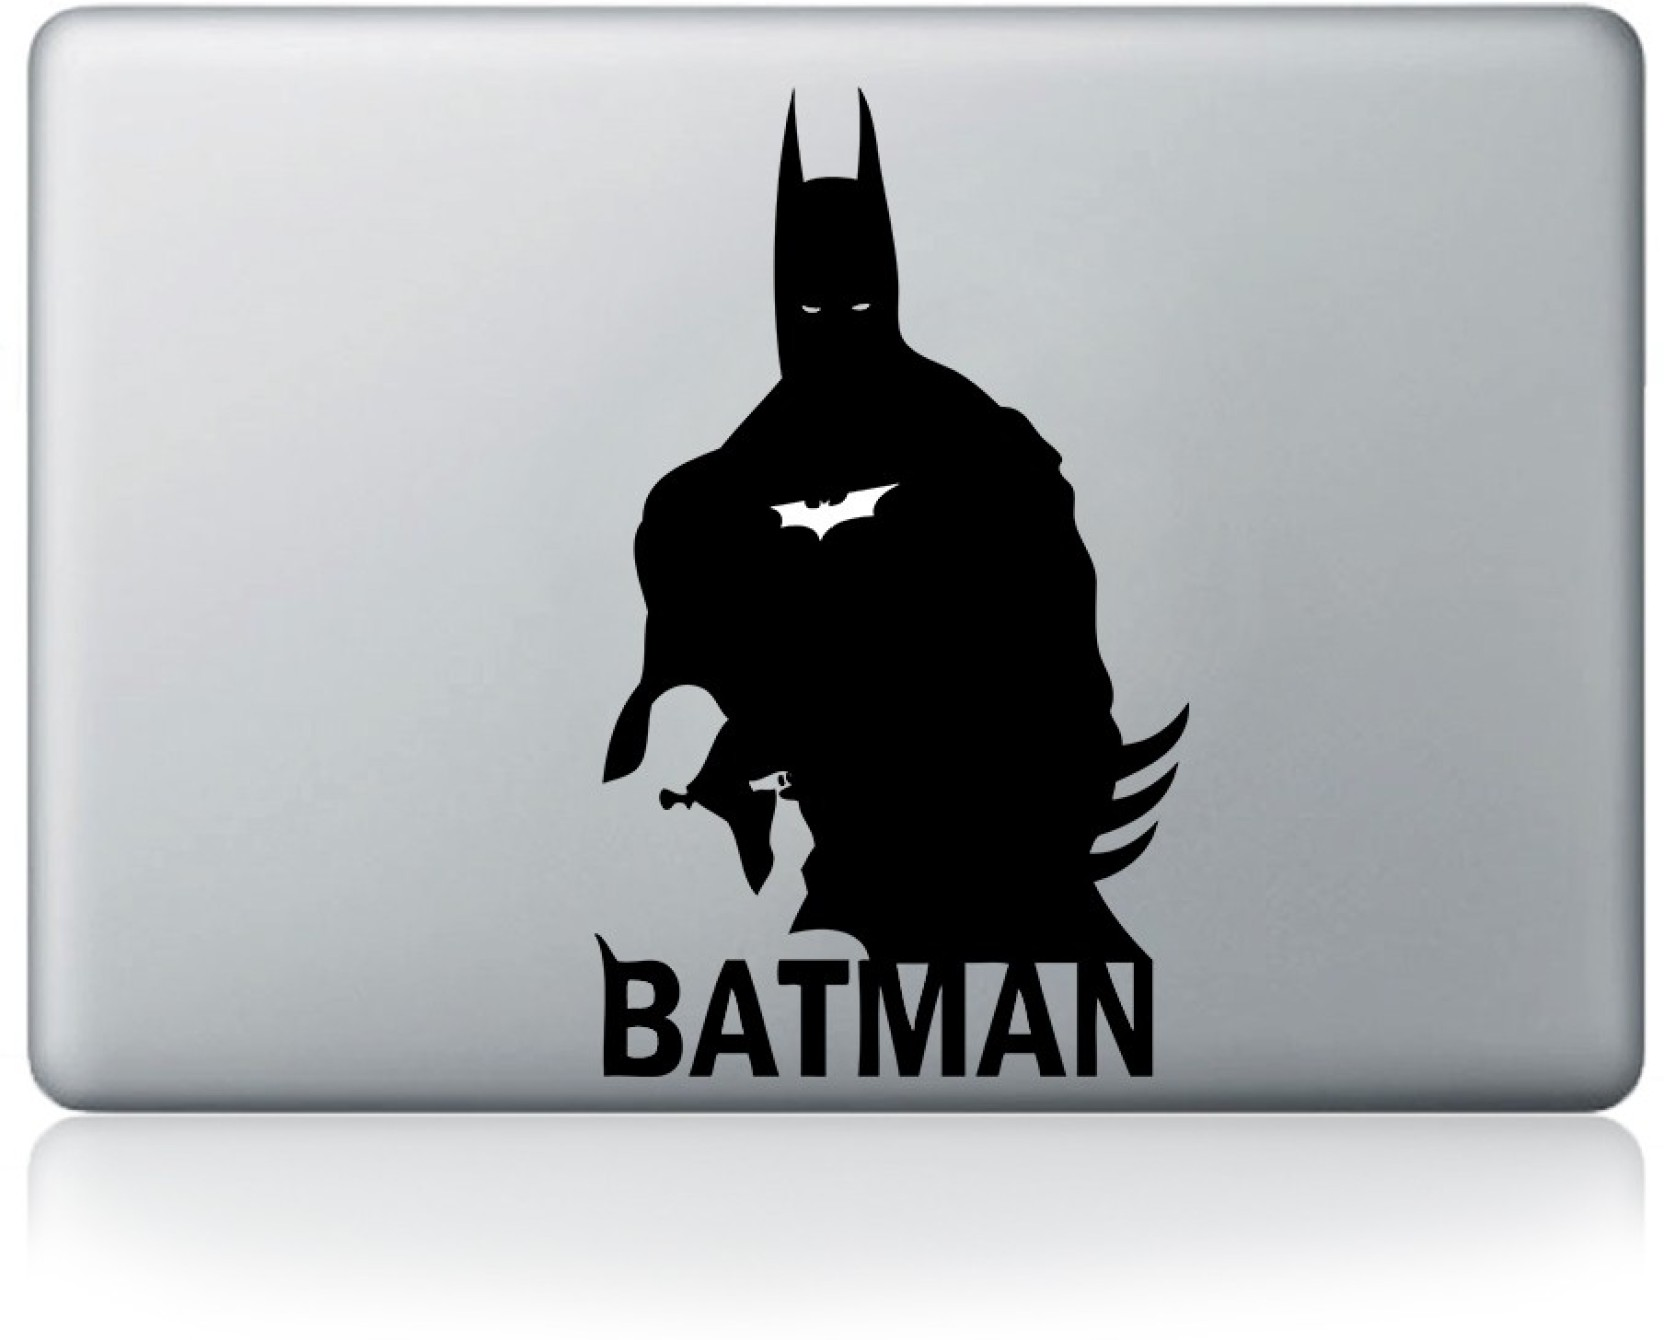 Batman Writing Custom Stickers